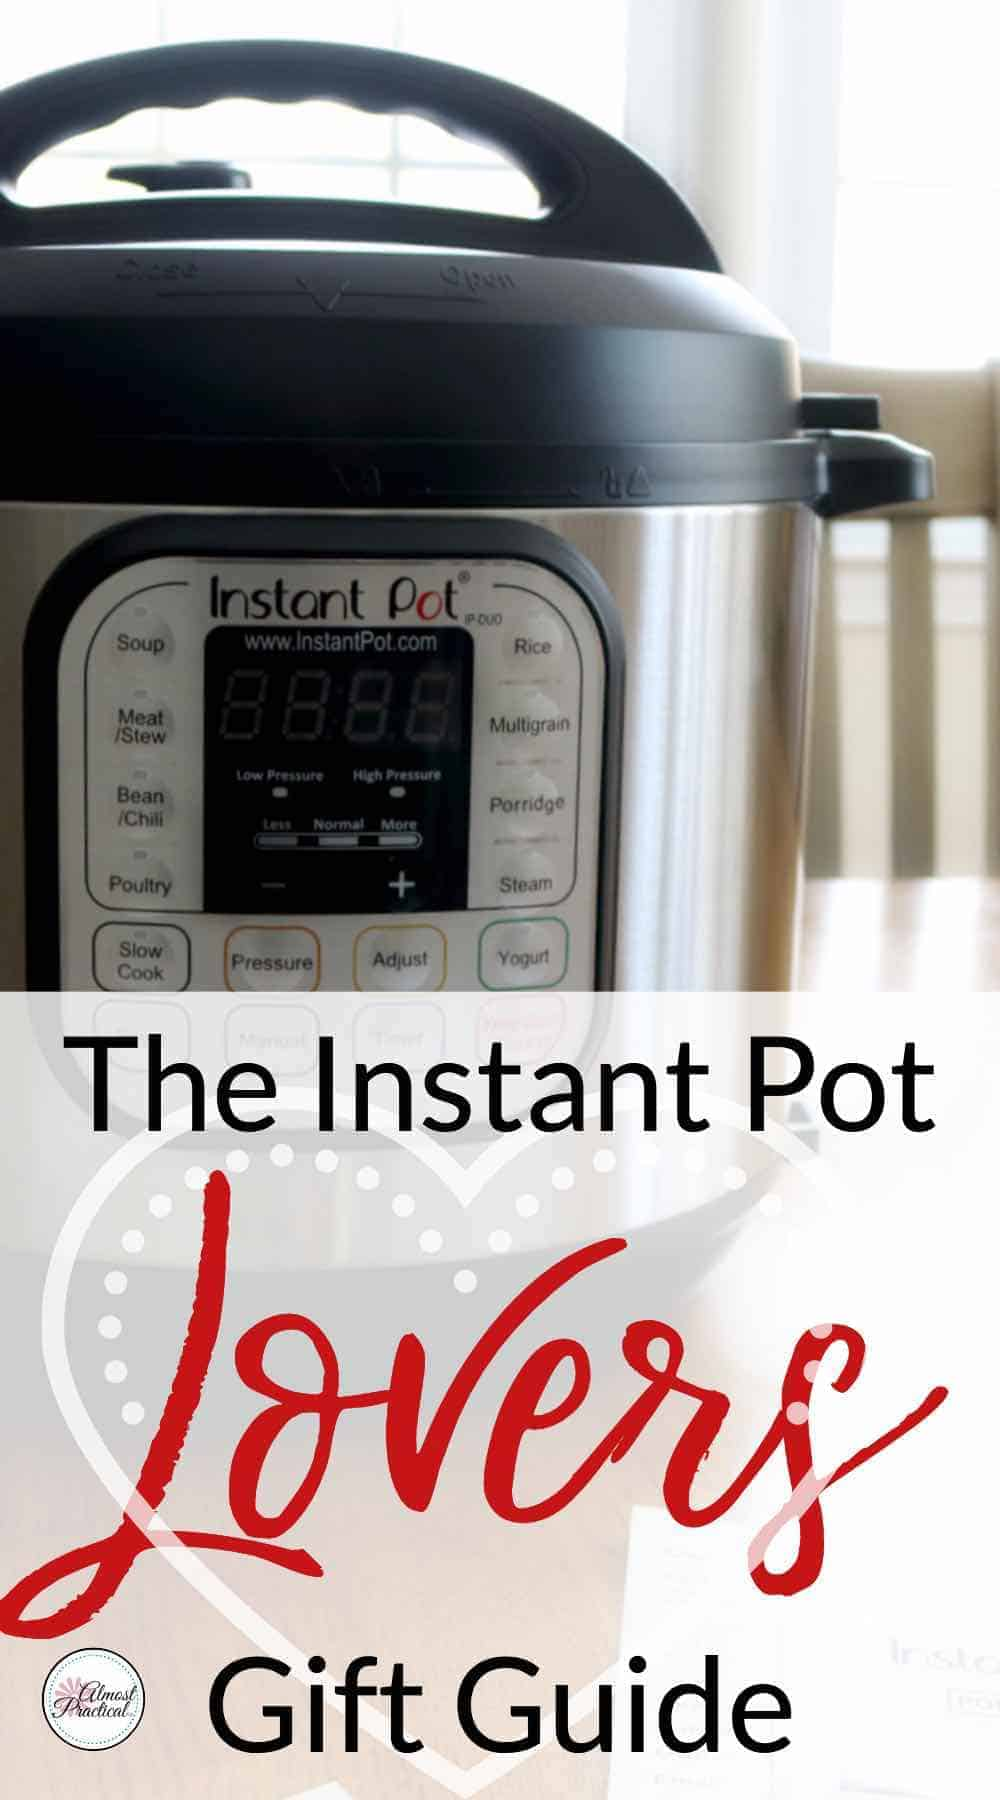 The Instant Pot Lovers Gift Guide - a collection of Instant Pot Accessories that any cook would love to receive.